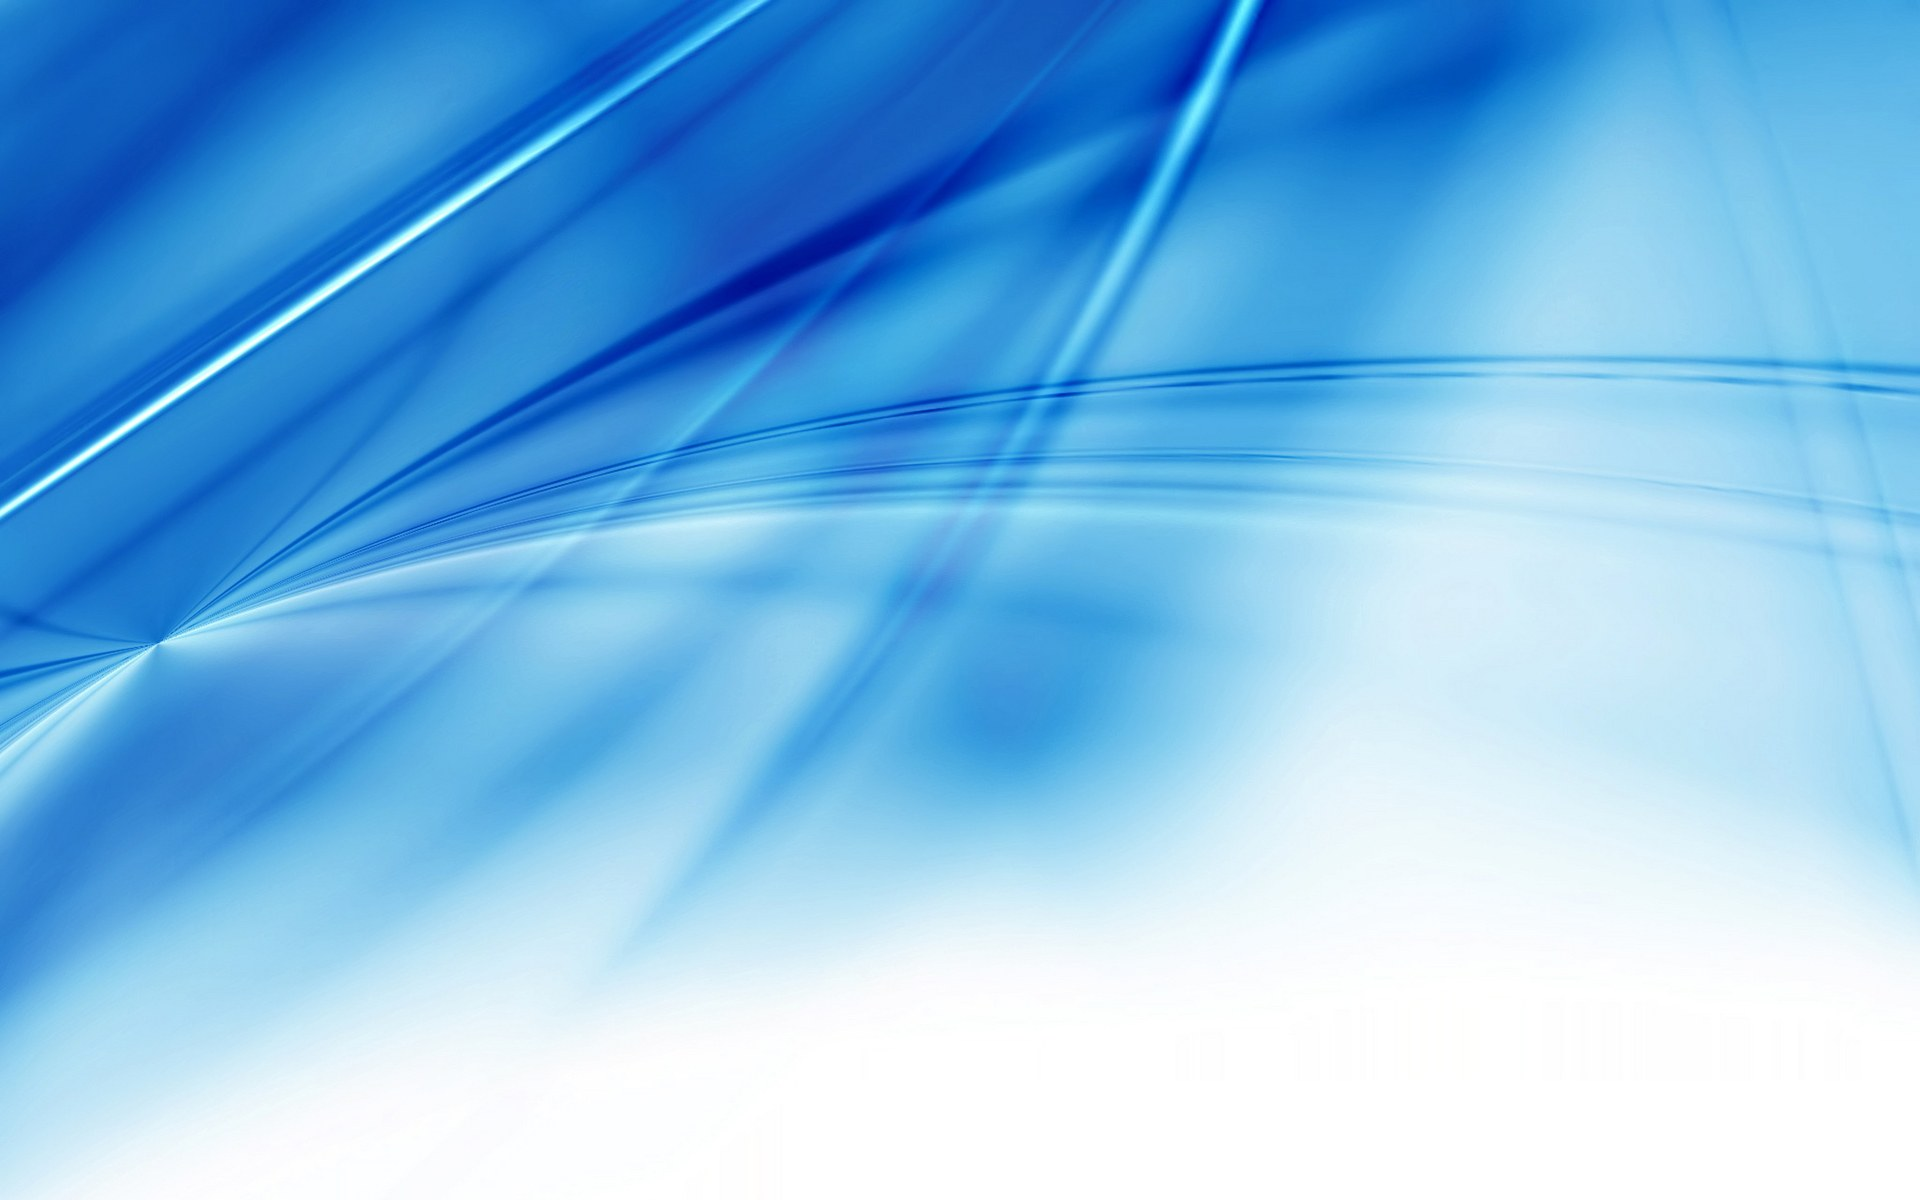 Blue Abstract Background 3158 Hd Wallpapers in Abstract   Imagescicom 1920x1200